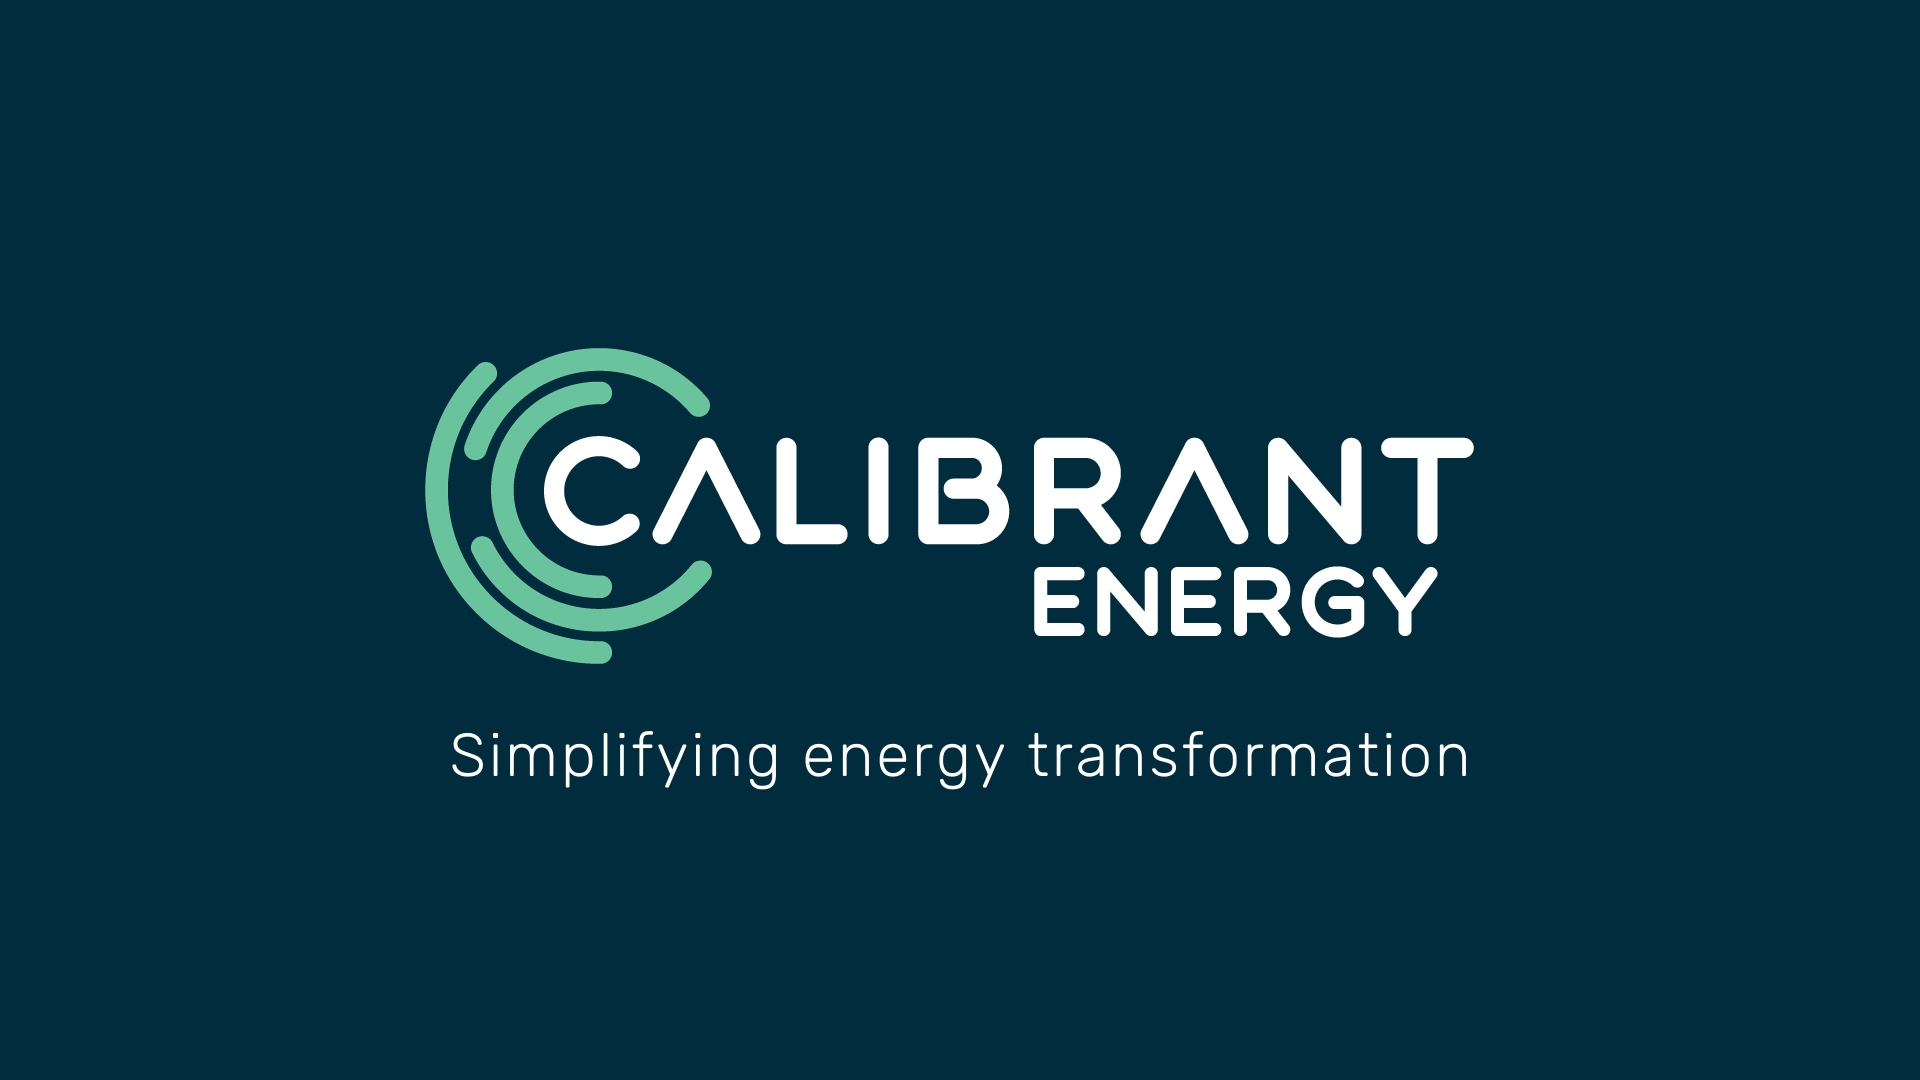 Siemens And Macquarie S Green Investment Group Launch Distributed Energy Venture Calibrant Energy Press Company Siemens